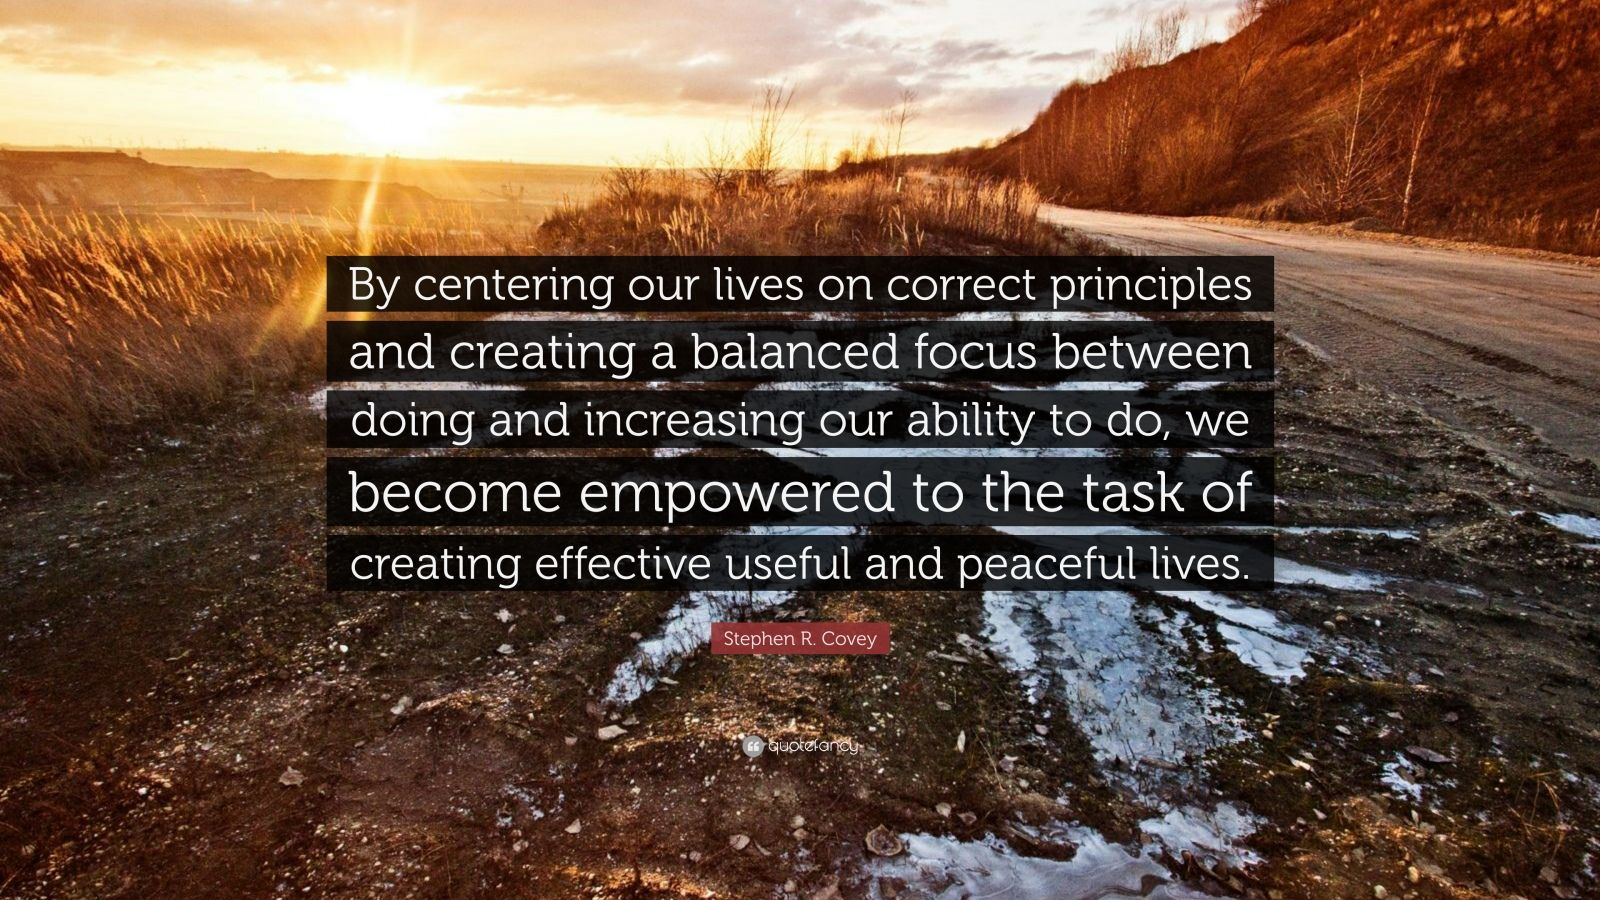 """Stephen R. Covey Quote: """"By centering our lives on correct principles and creating a balanced focus between doing and increasing our ability to do, we become empowered to the task of creating effective useful and peaceful lives."""""""